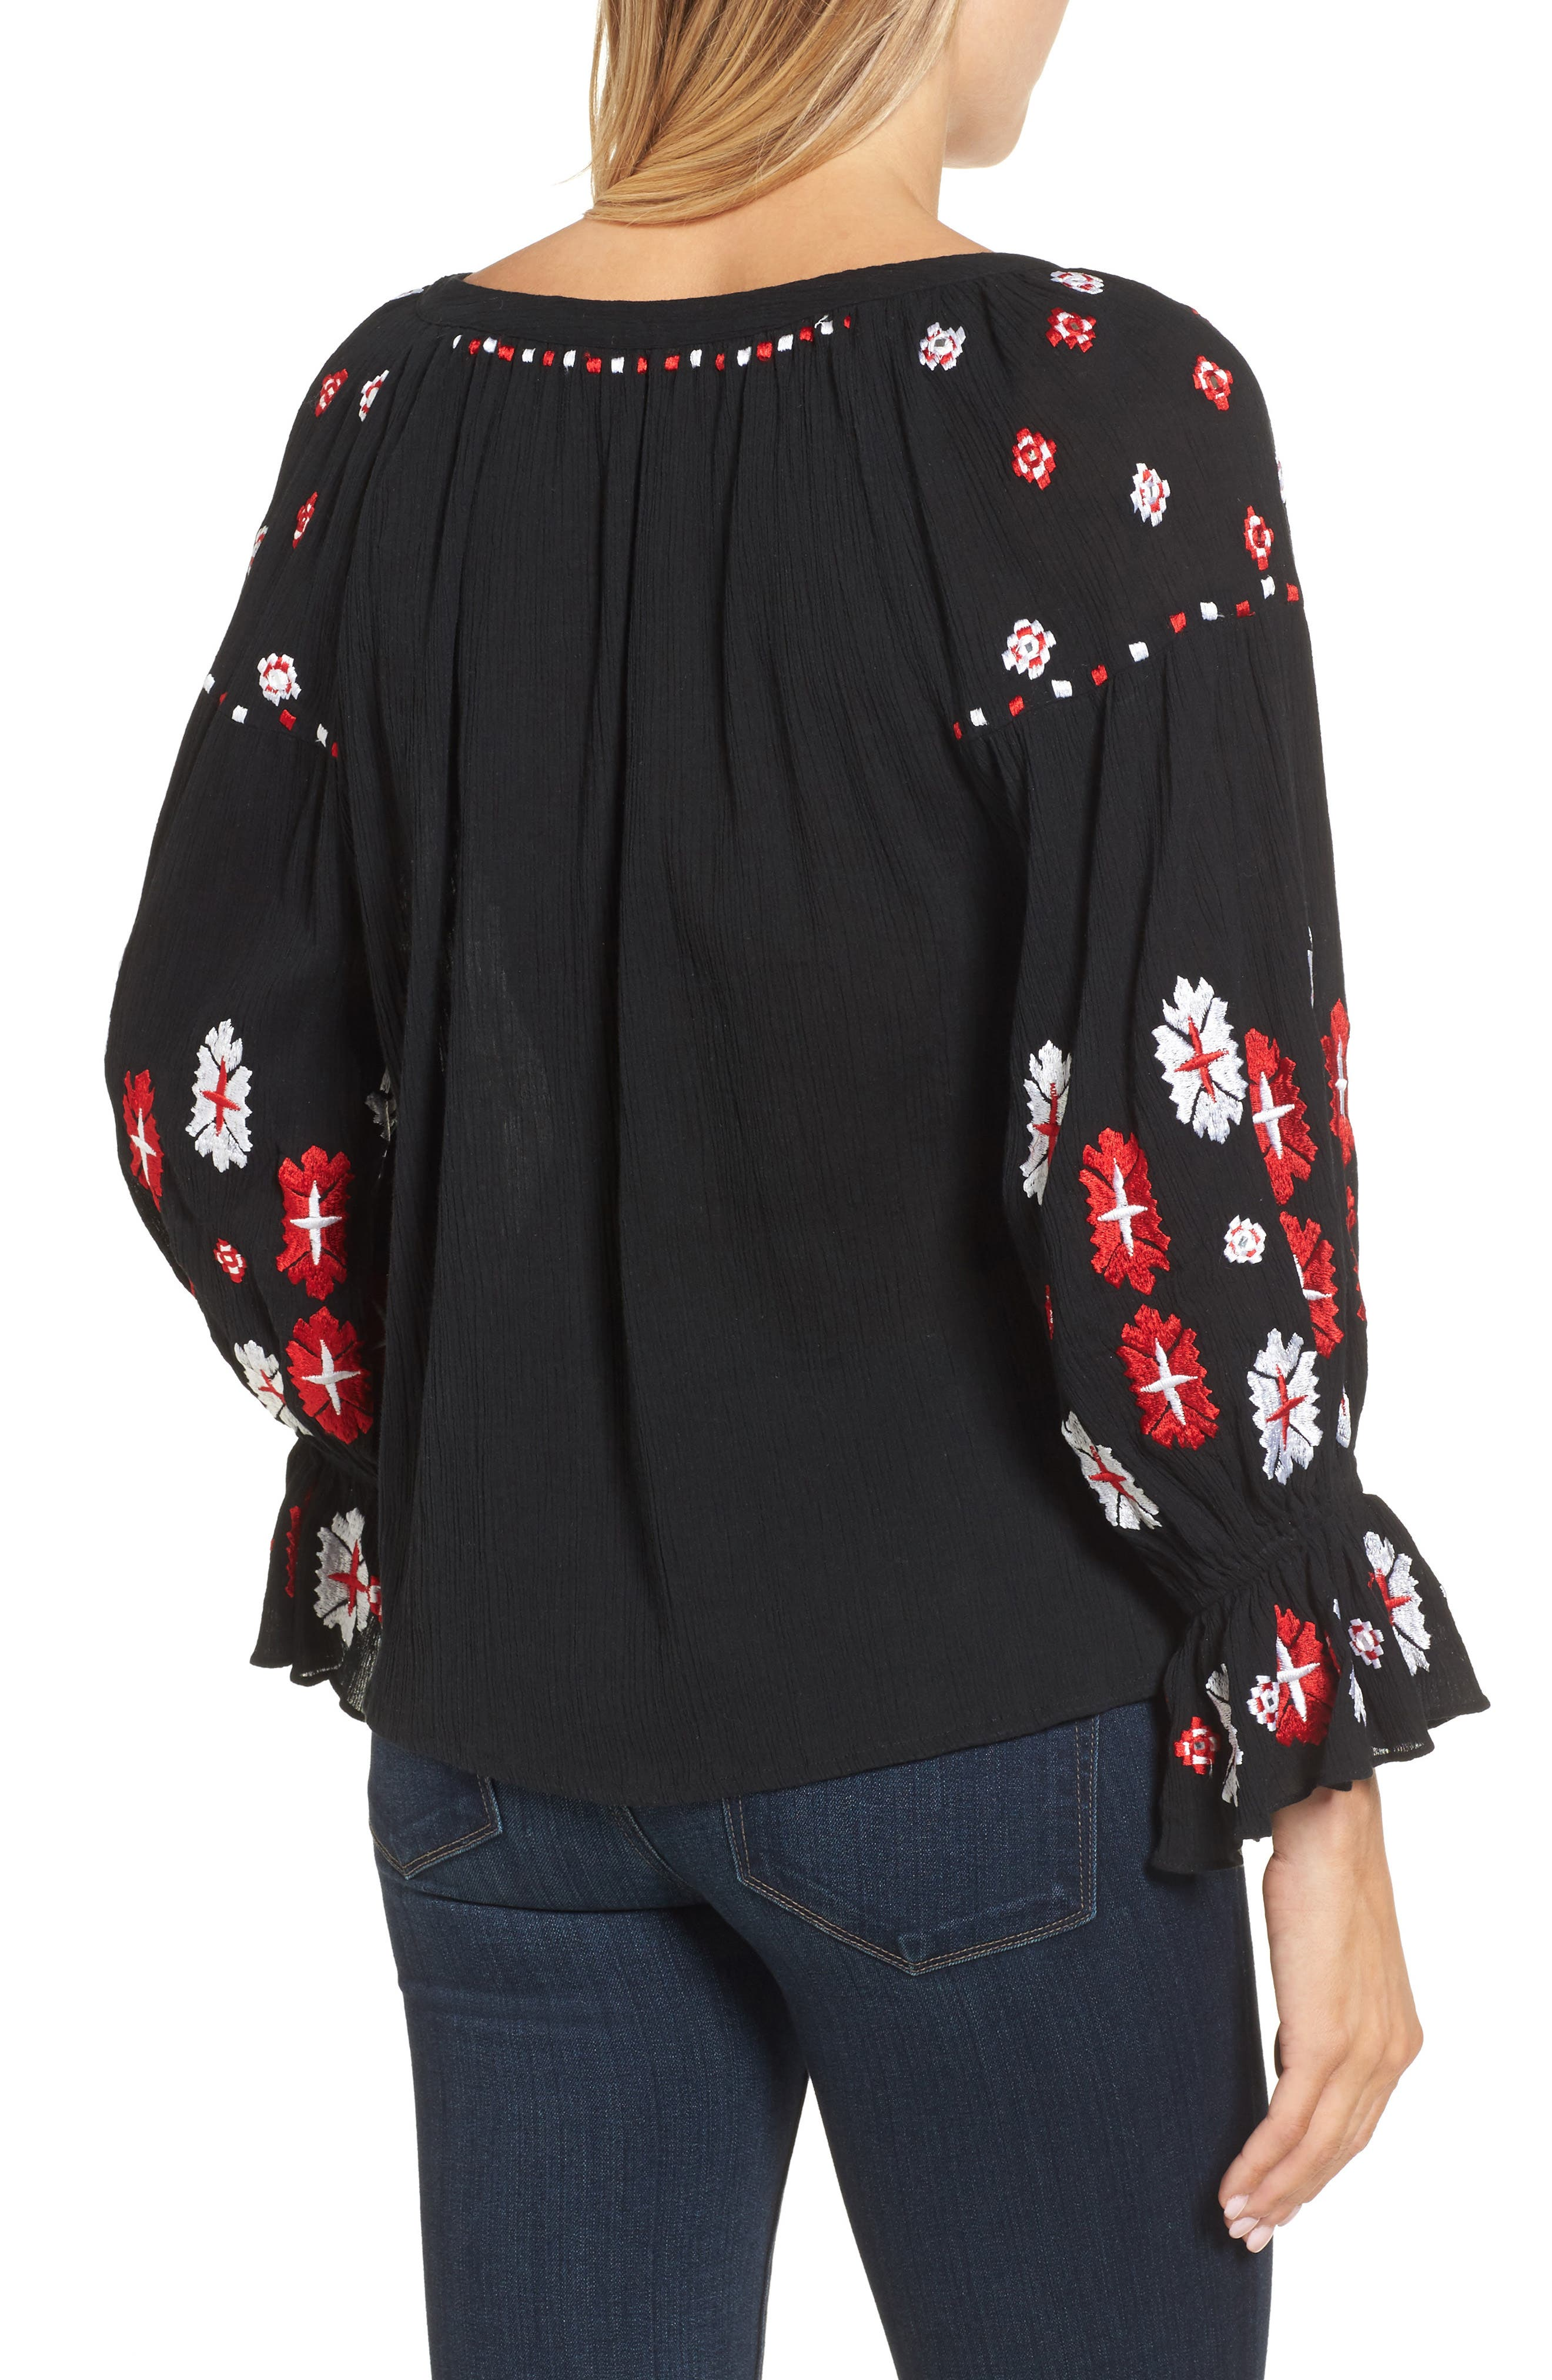 Myra Hand Embroidered Blouse,                             Alternate thumbnail 2, color,                             001